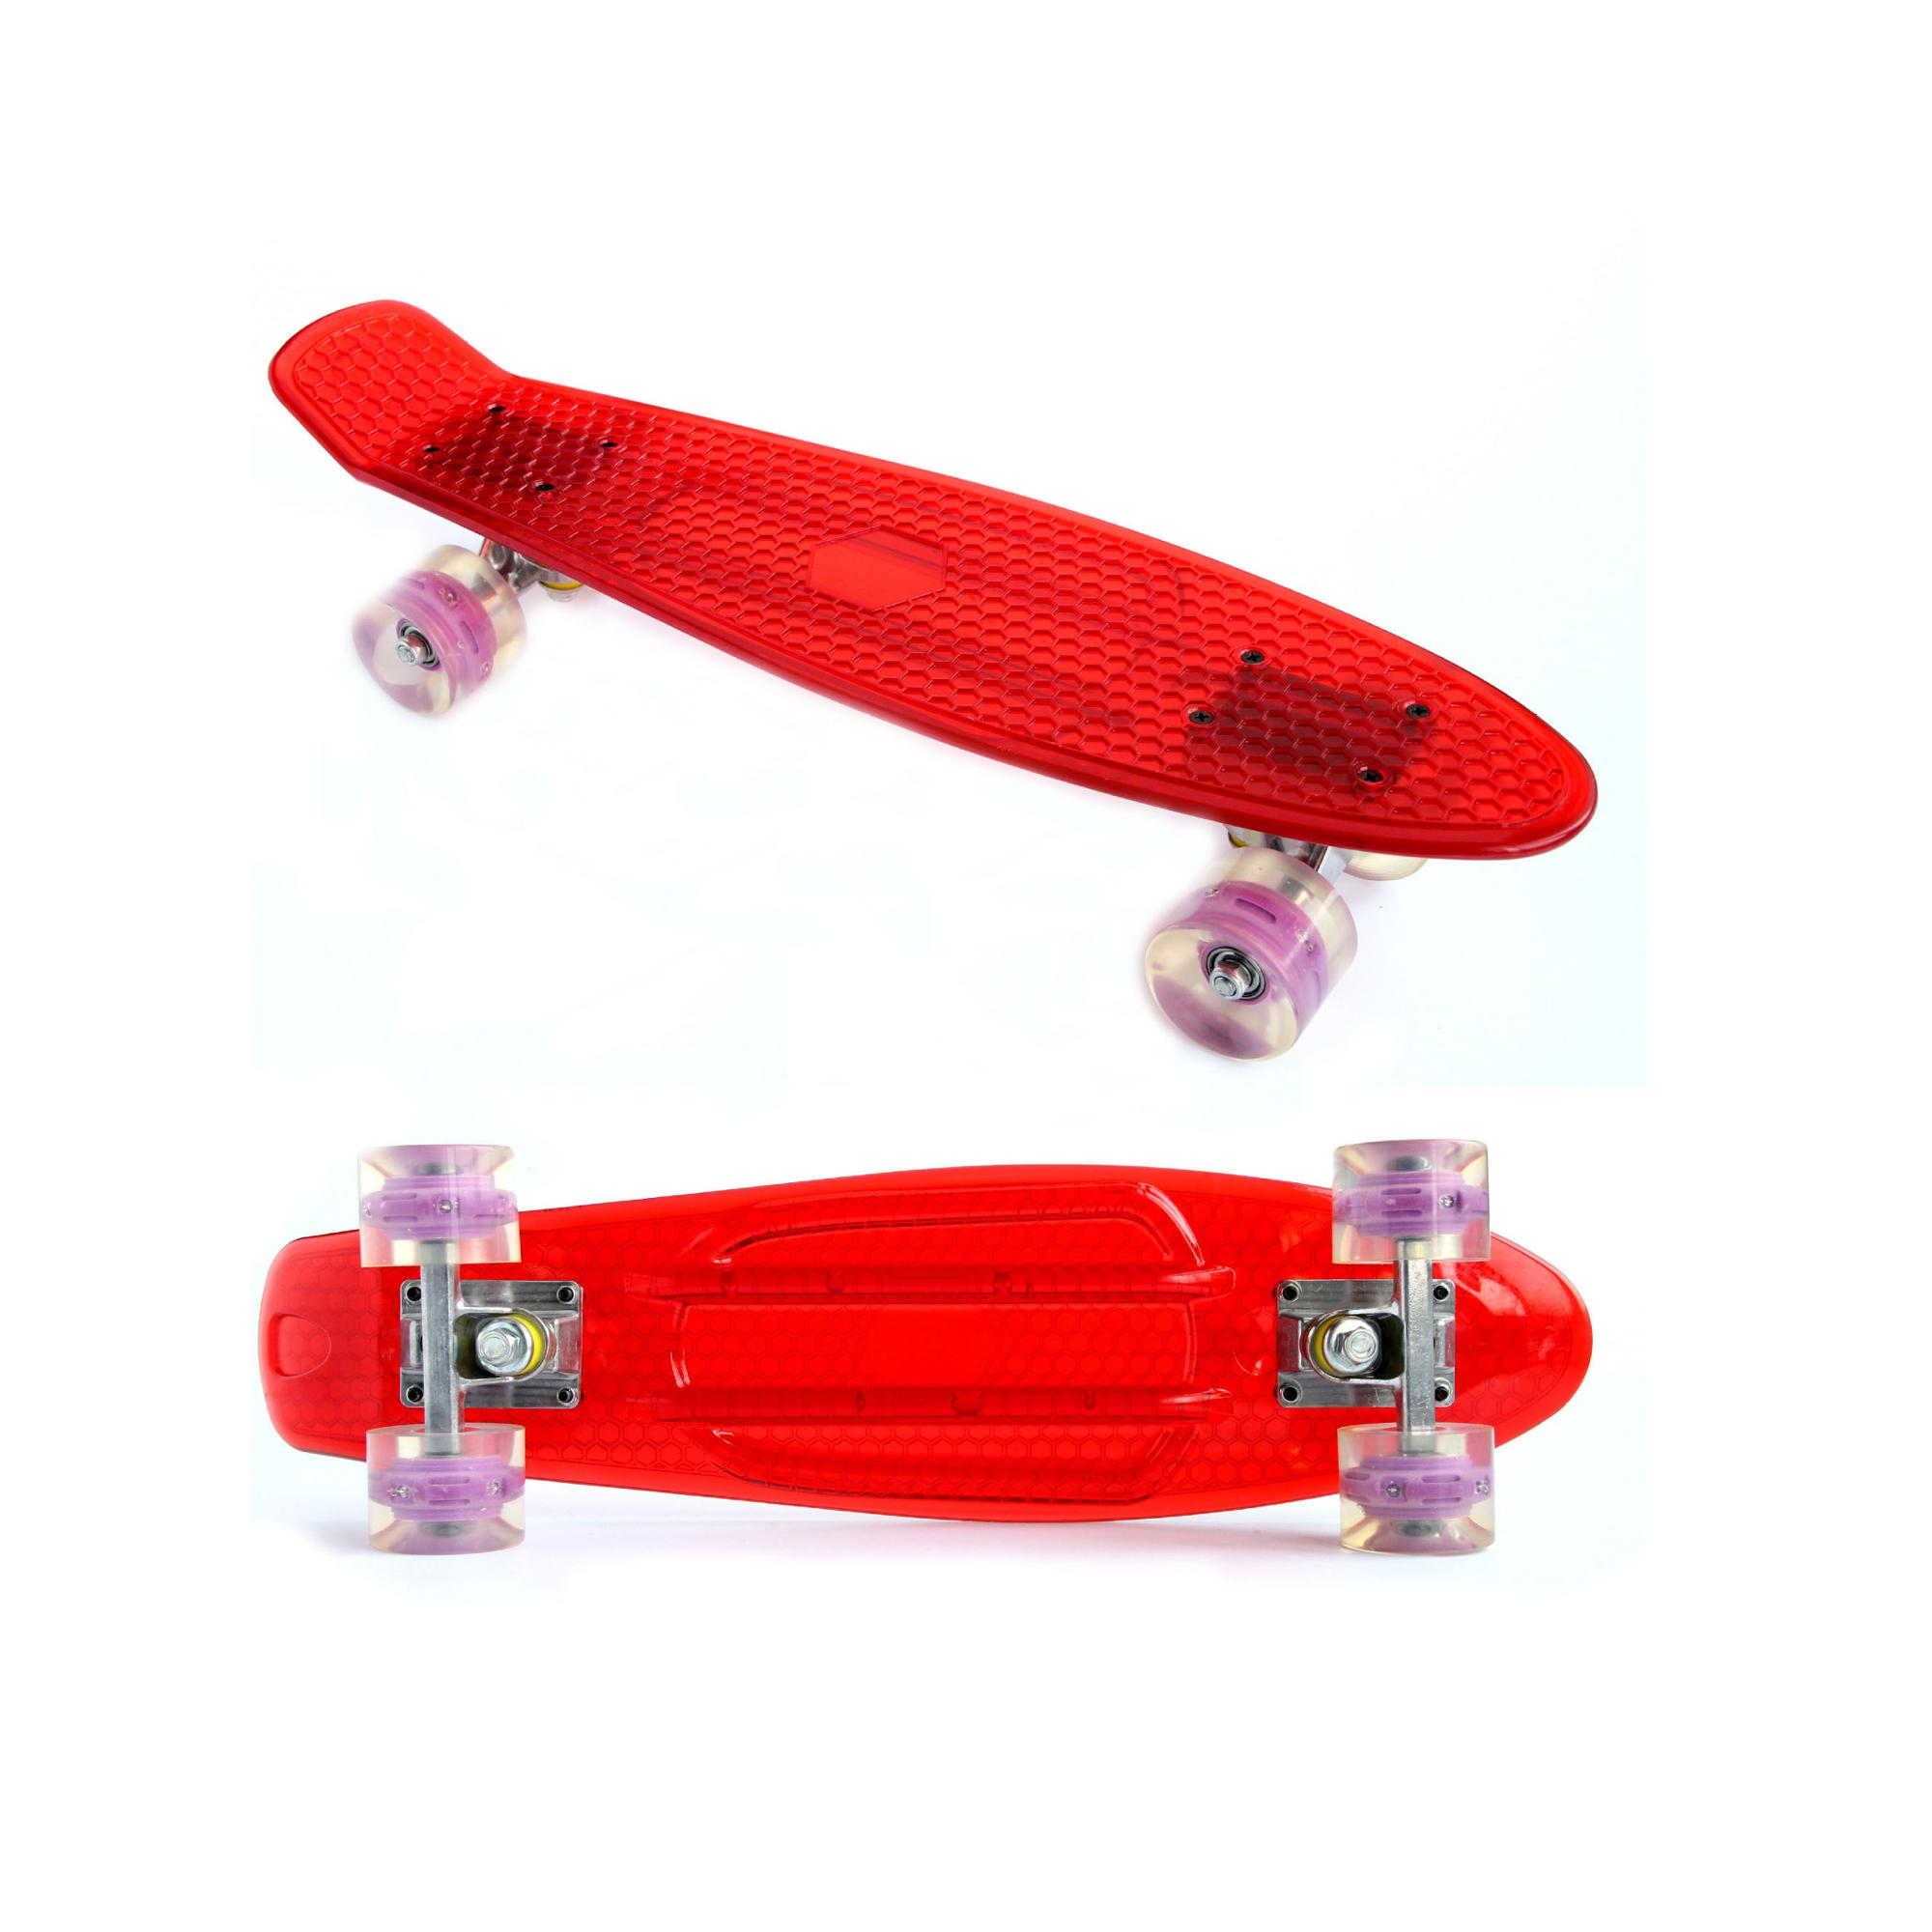 Wholesale plastic cruiser skateboard 22inch transparent cruiser skate board longboard